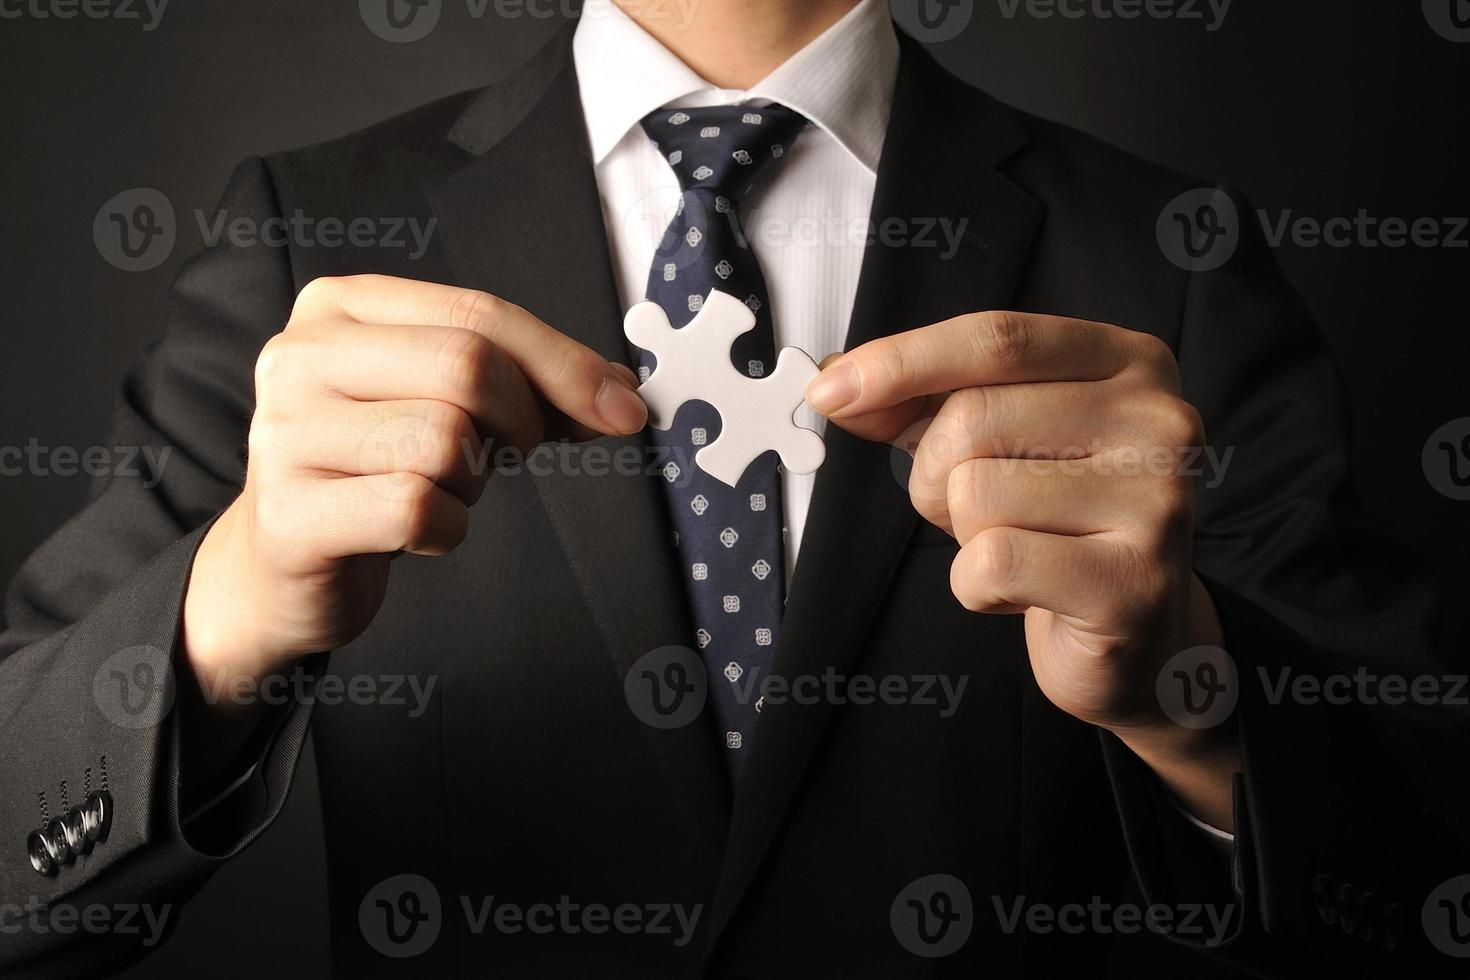 People who have a jigsaw puzzle piece photo